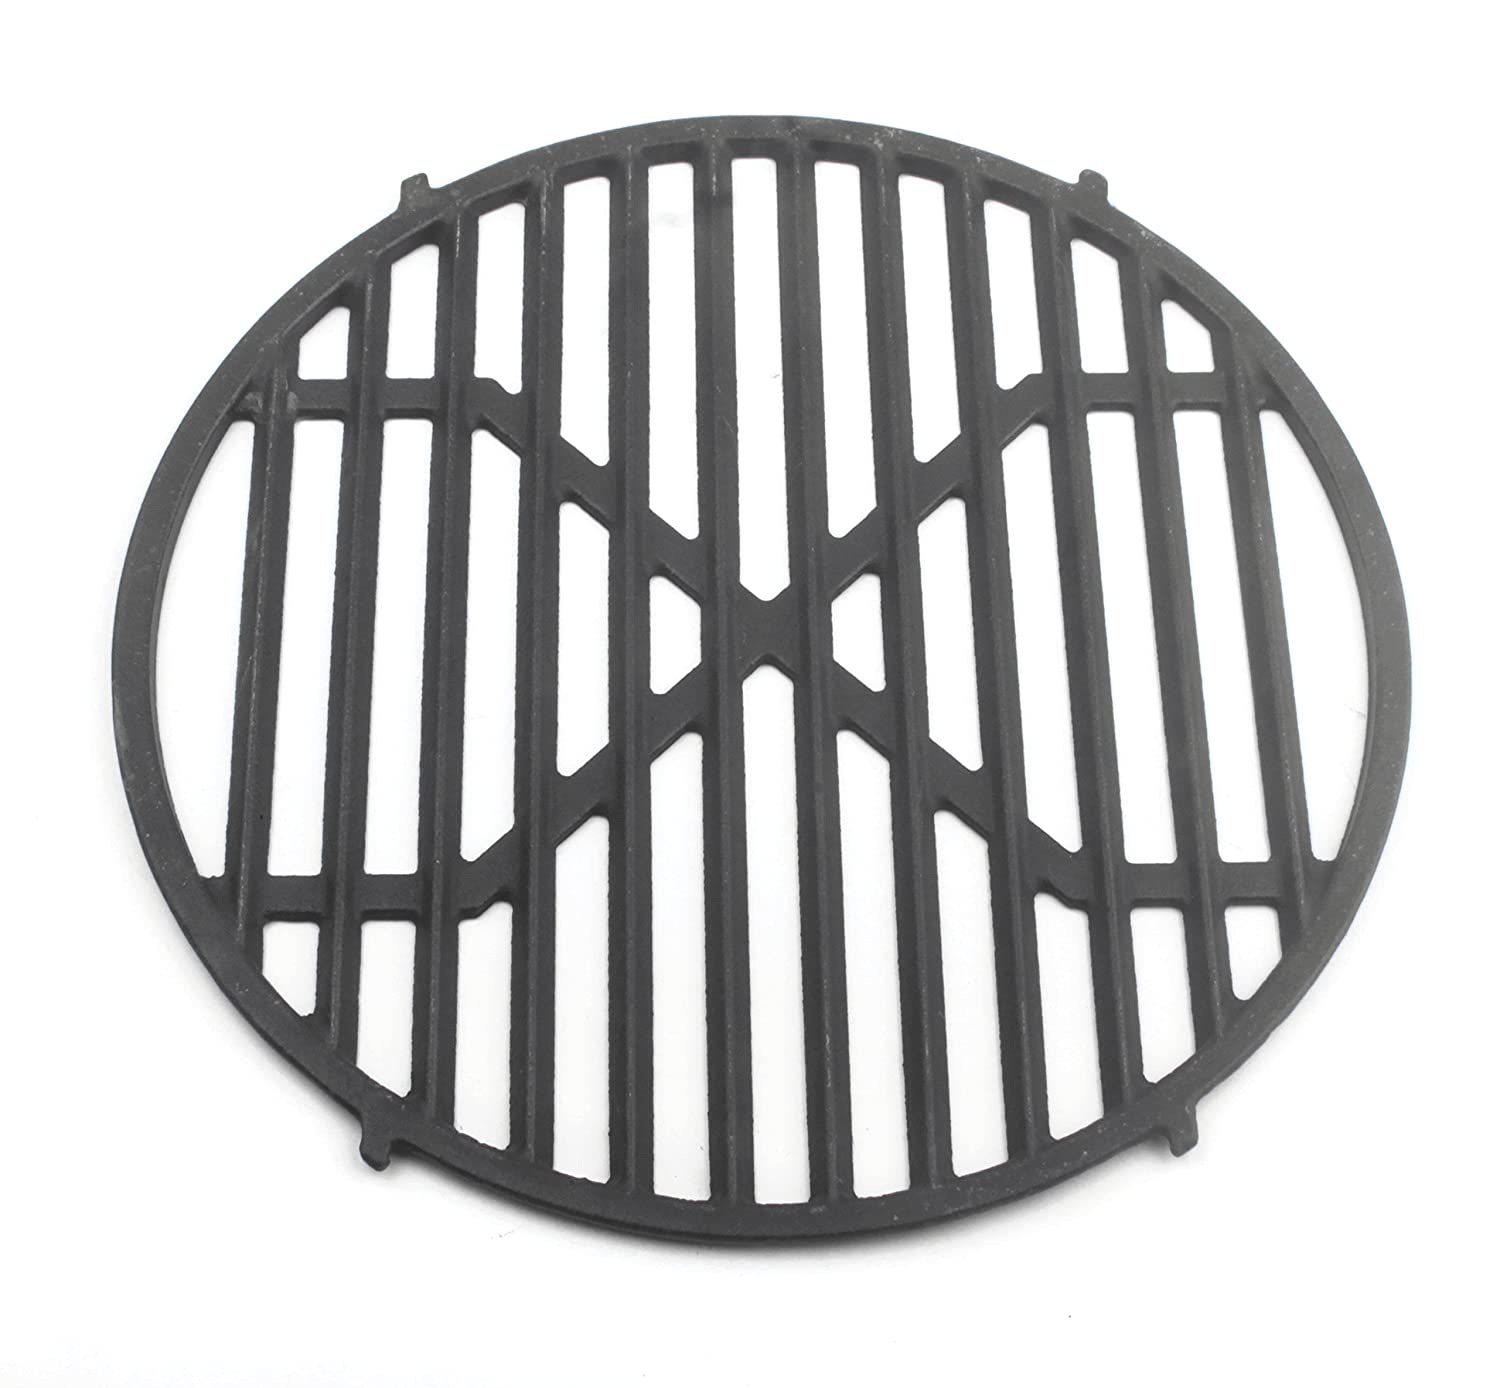 Cast Iron Grate Upgrade for Cooking Grates Approximately 30 cm with Hole Fit For Your Steak Grillen HeRo24